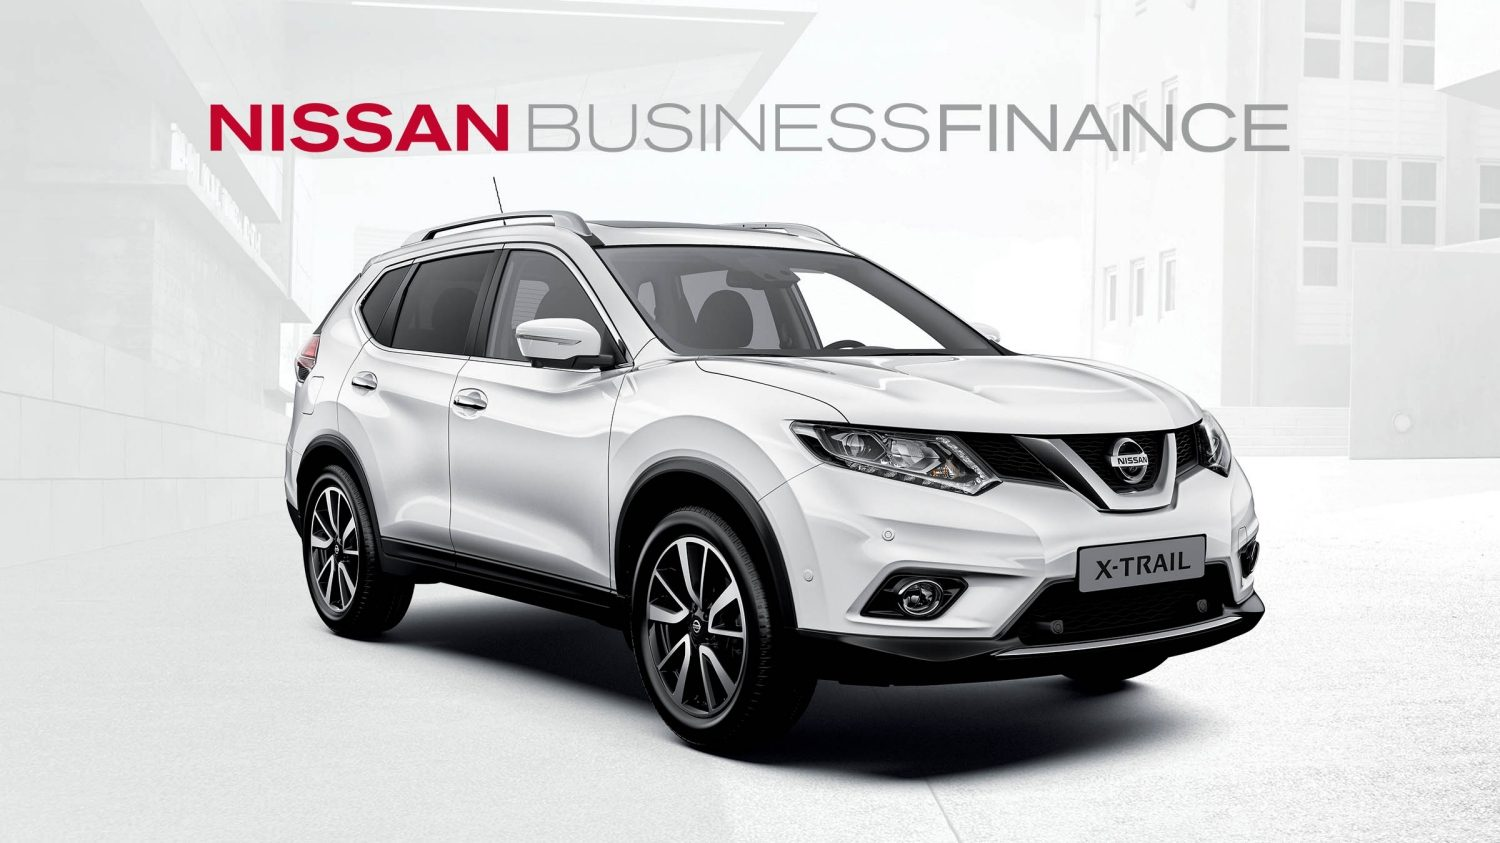 Nissan Business Finance - X-TRAIL